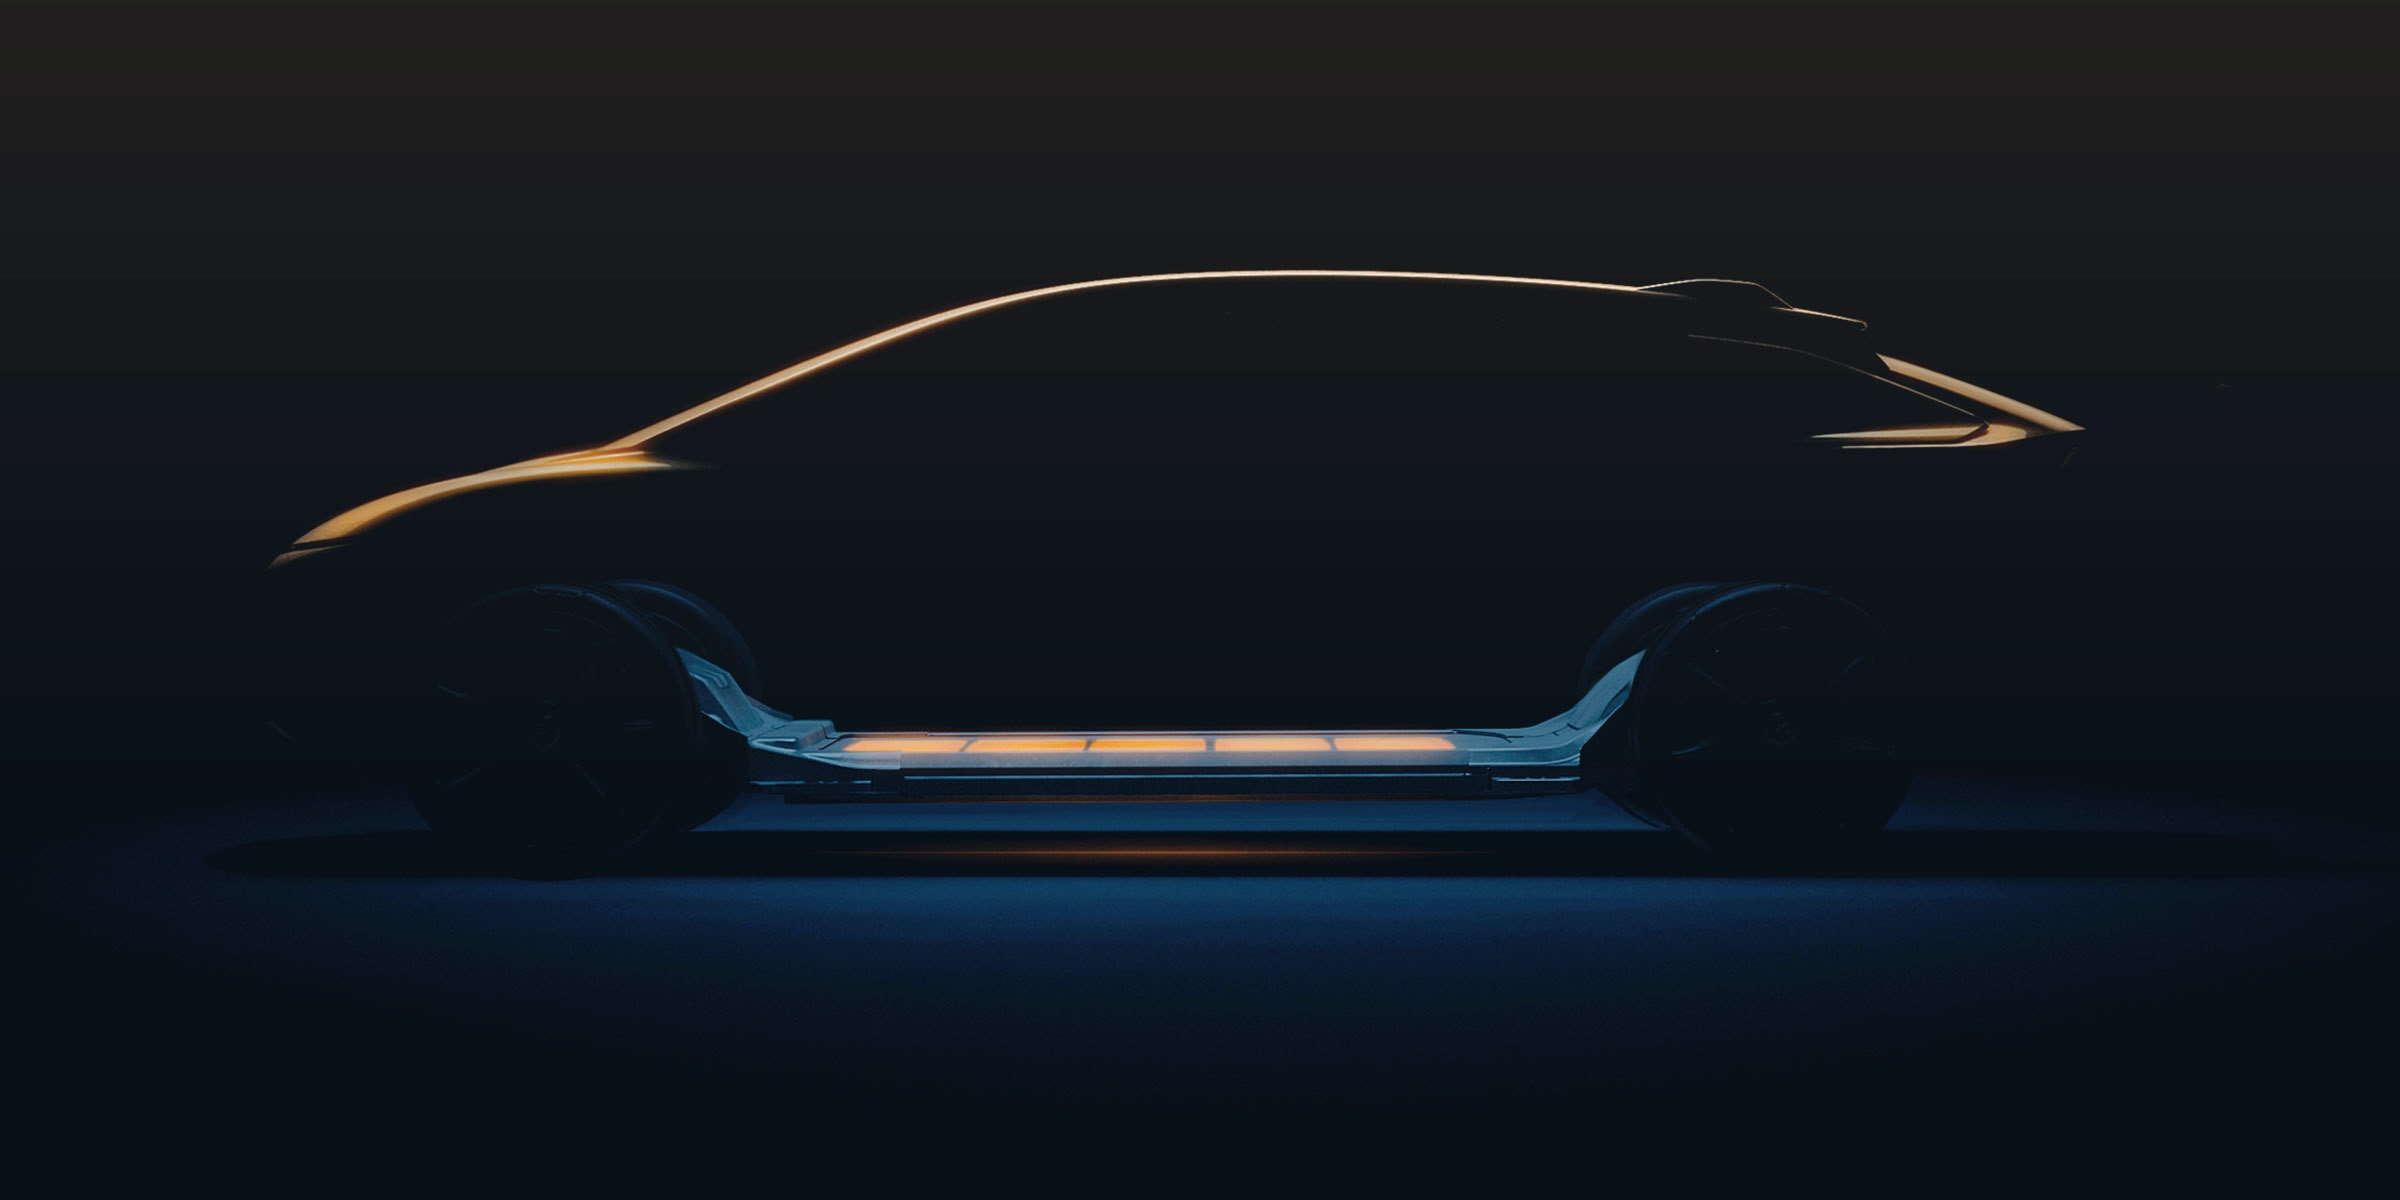 Another glimpse of what can only be the production car's chassis, from Faraday Future's website.